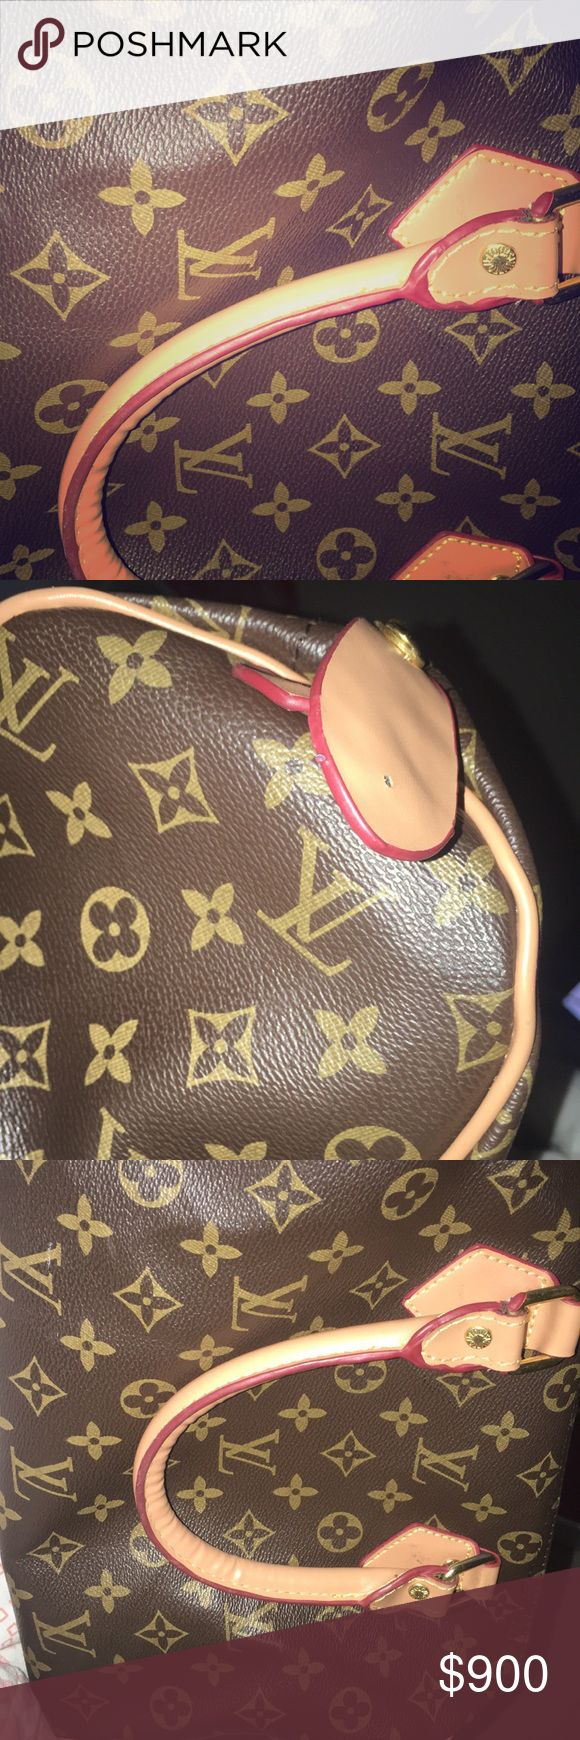 Louis Vuitton purse Like New !!!! willing to go down on the price Louis Vuitton Bags Totes